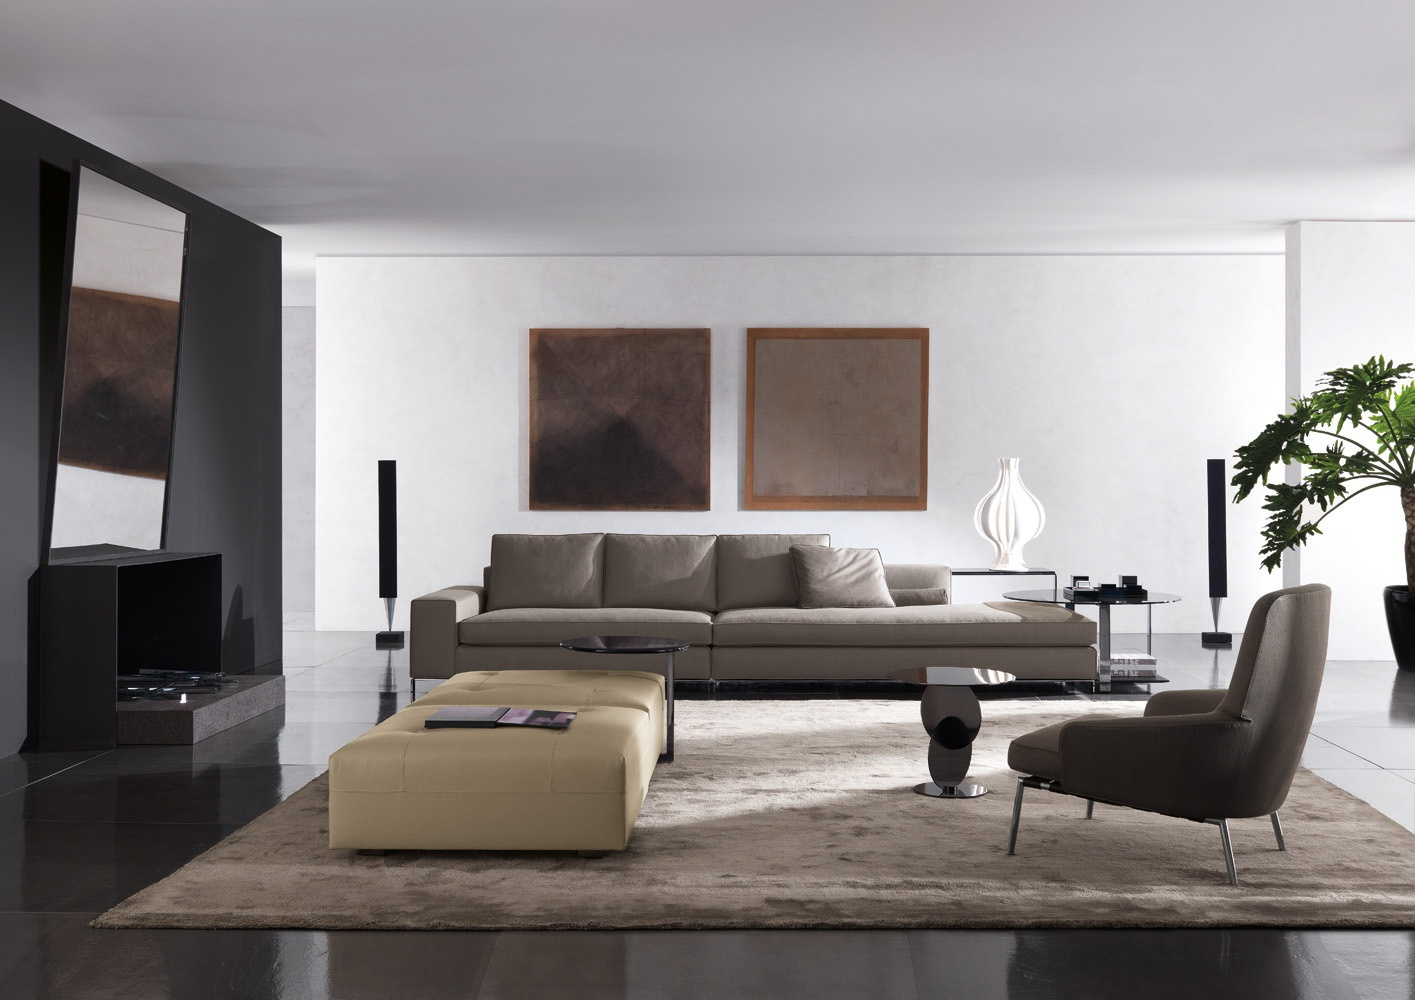 Modular sofa for rest williams minotti luxury furniture mr for Minotti outlet italy